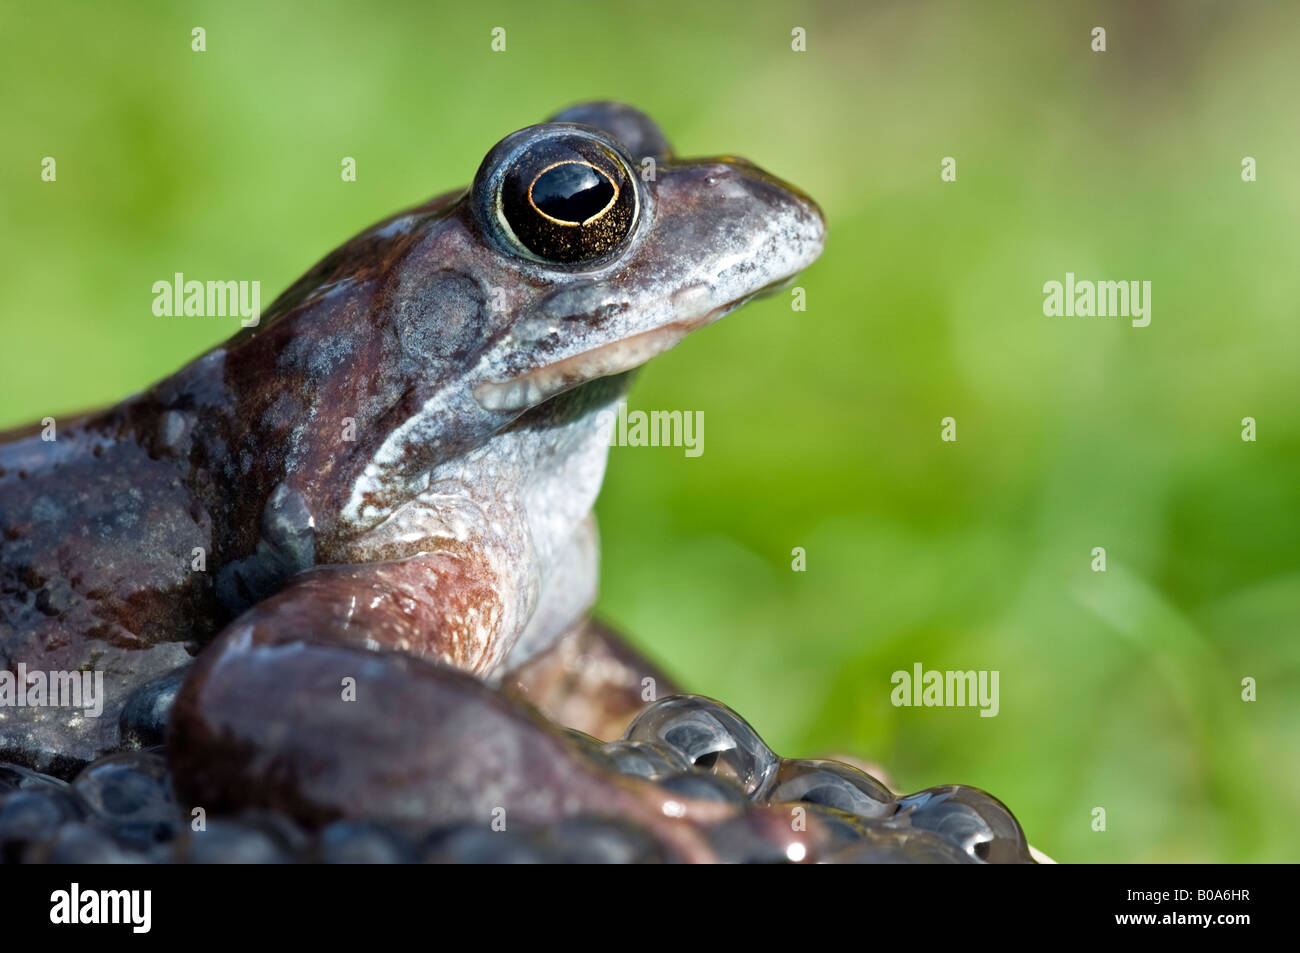 Female common frog (rana temporaria) with frogspawn in a garden pond. - Stock Image